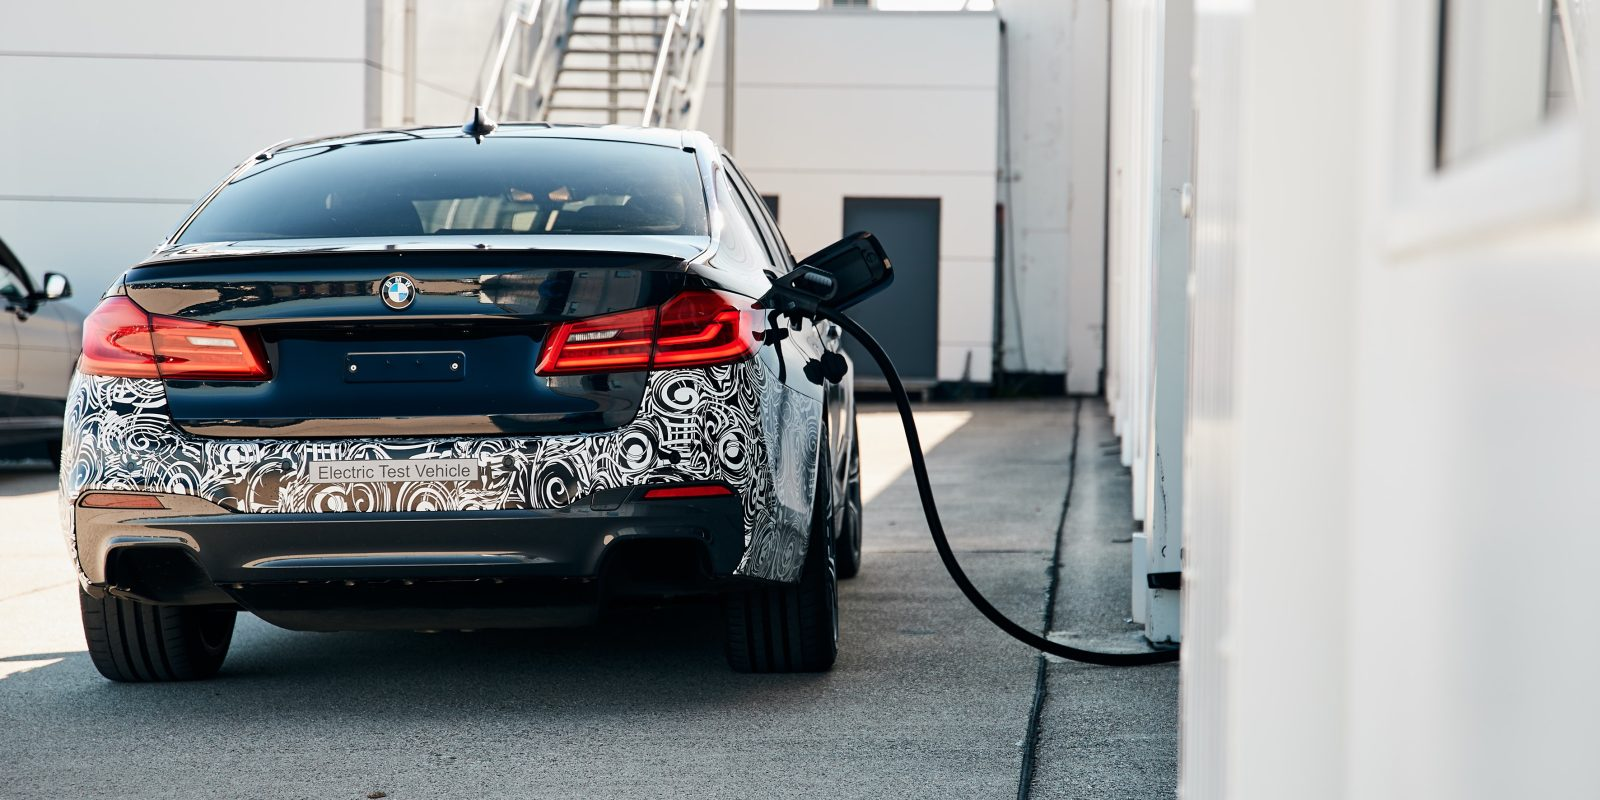 BMW shows no desire to make own batteries in electric push, frustrating German govt